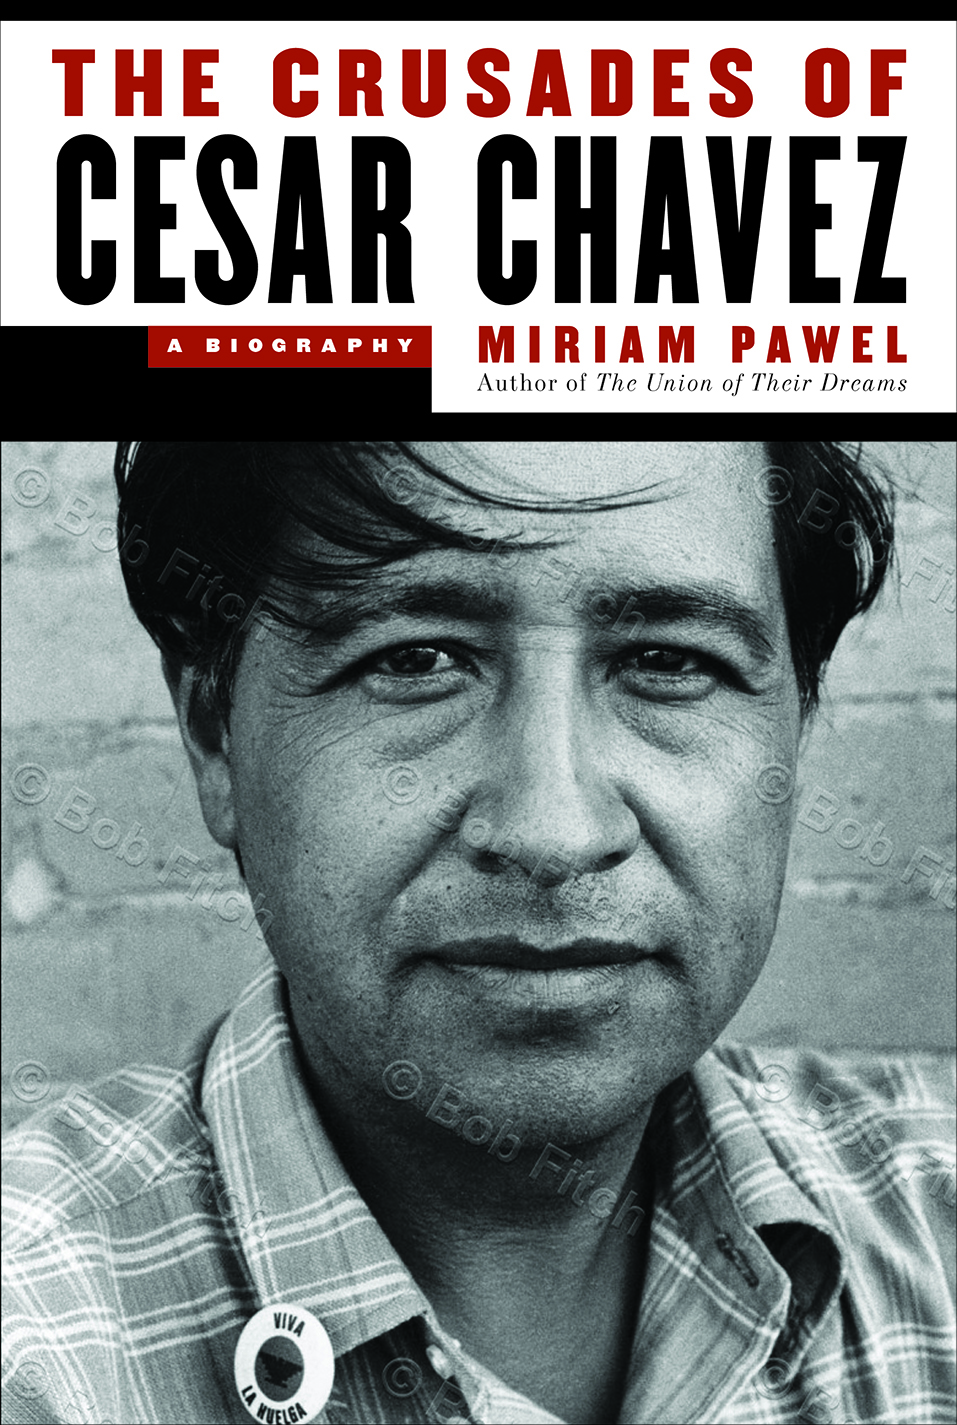 Honoring the life of Cesar Chavez